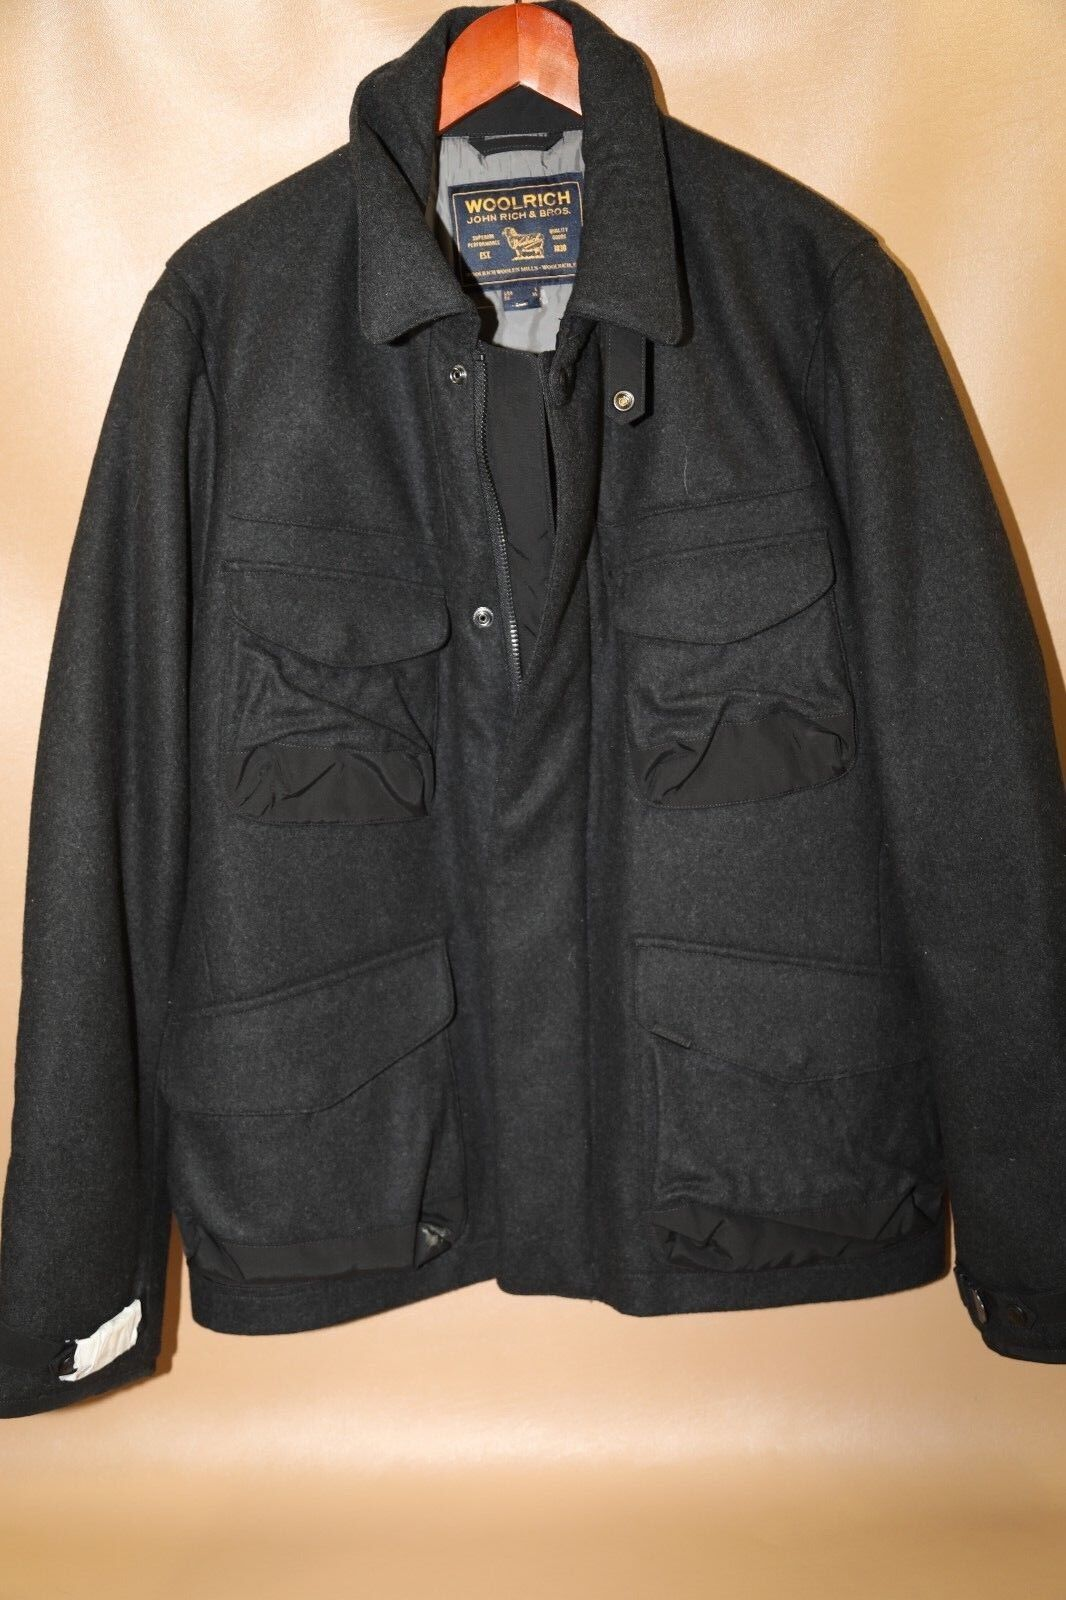 168  WOOLRICH Wool Blend Car Coat Größe L  New with no tags